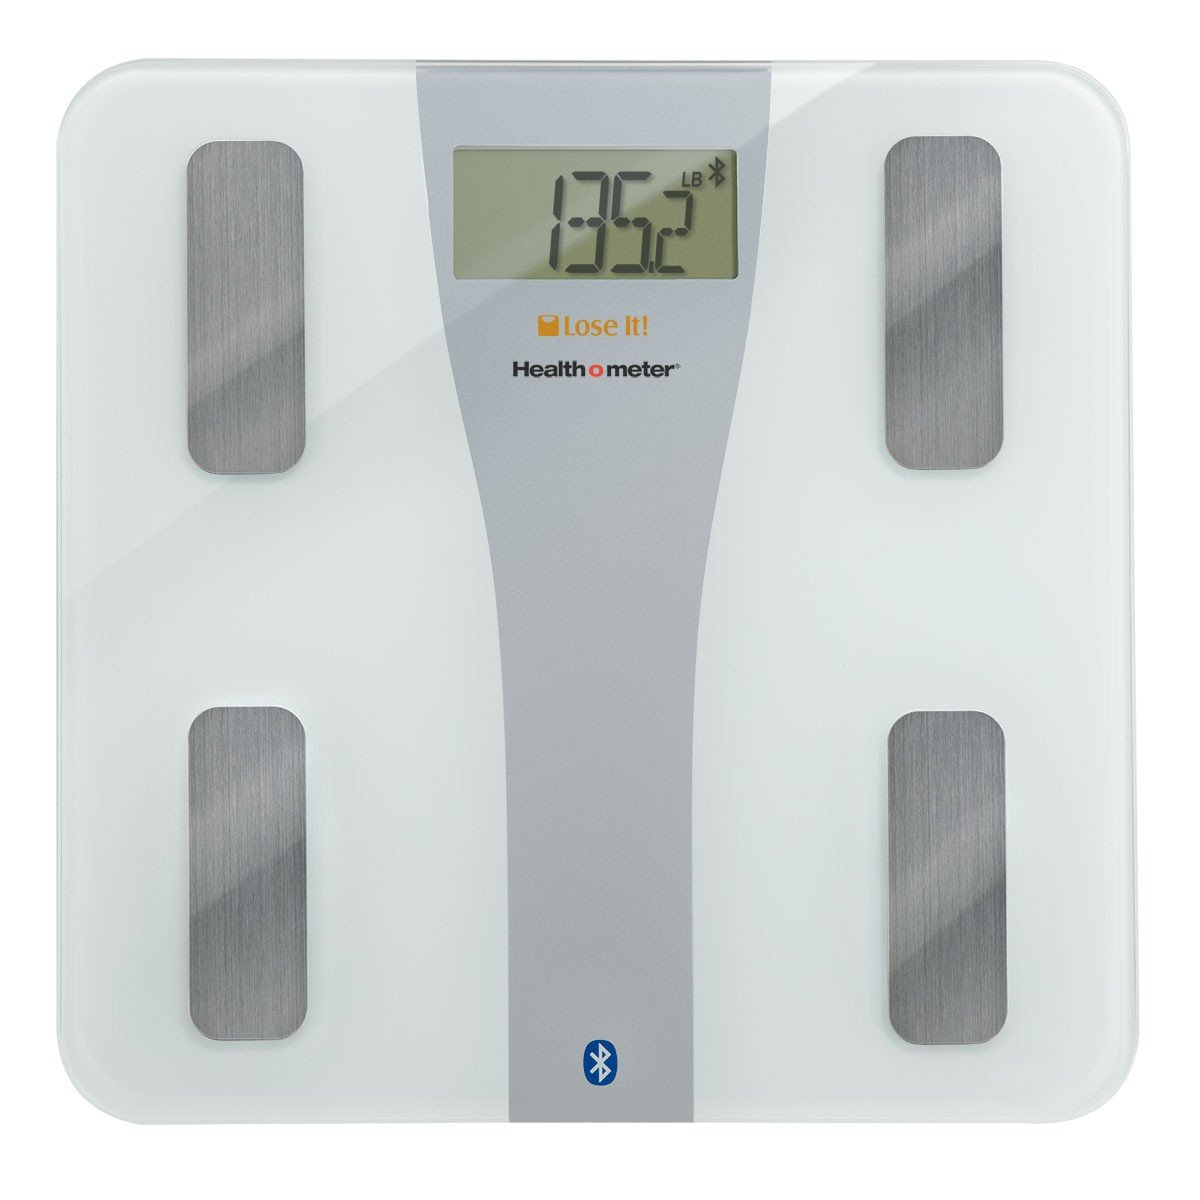 Lose It! Bluetooth Body Fat Scale by Health o Meter for Iphone,Compatible: iPhone 4S, 5, 5C, 5S ; iPod Touch-5th gen ; iPad Mini, 3rd gen, 4th gen Holmes Group BFM147DQ-01